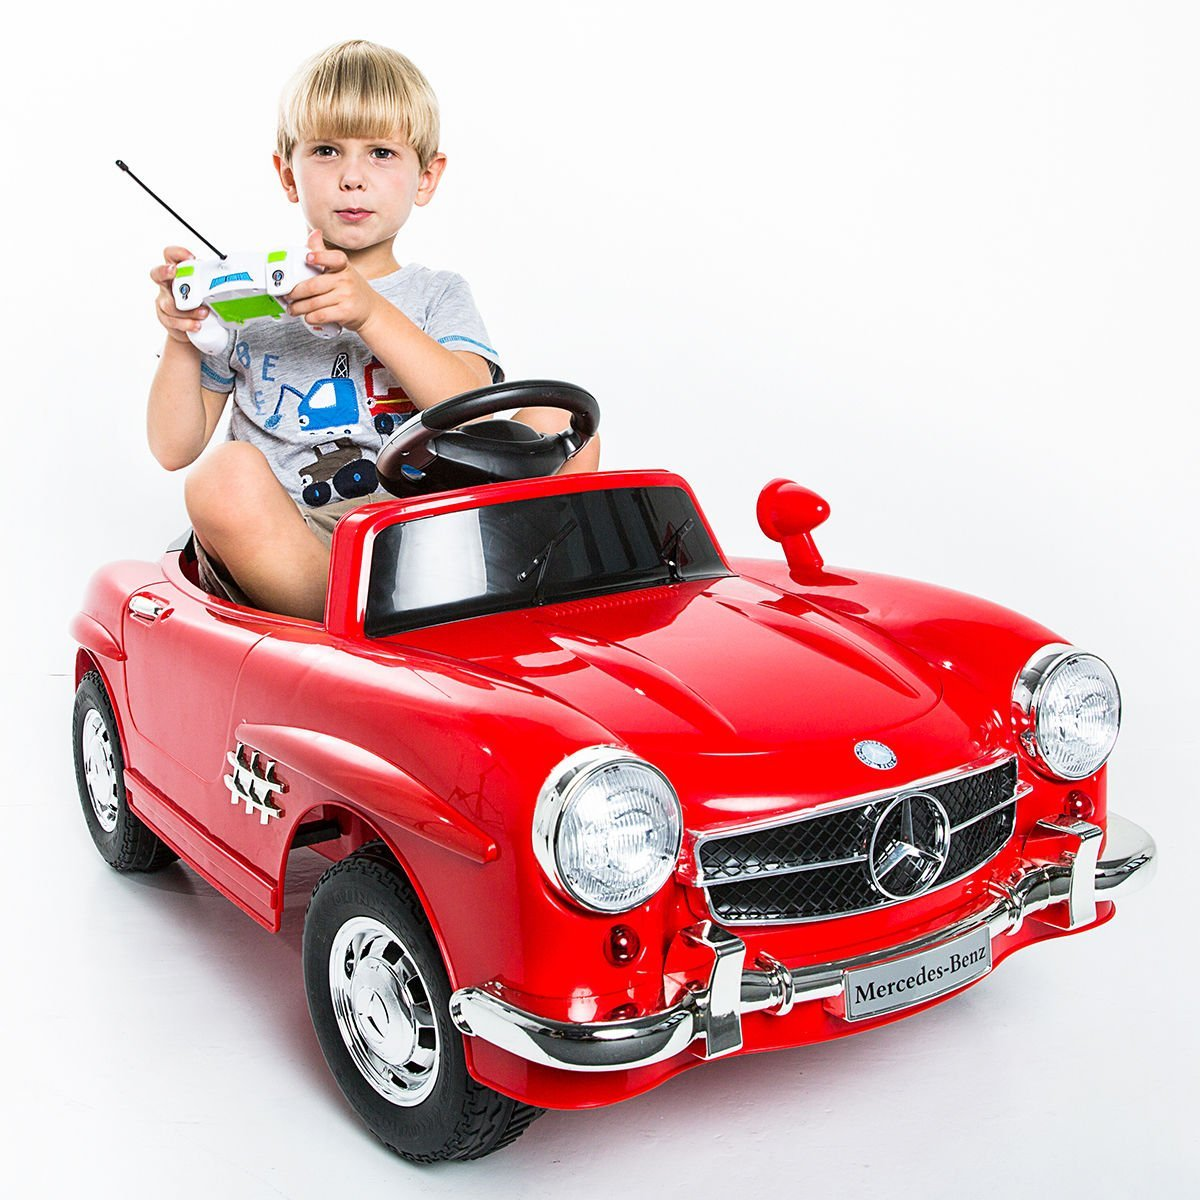 Toddler Toys Cars : Top best selling electric cars toy review in